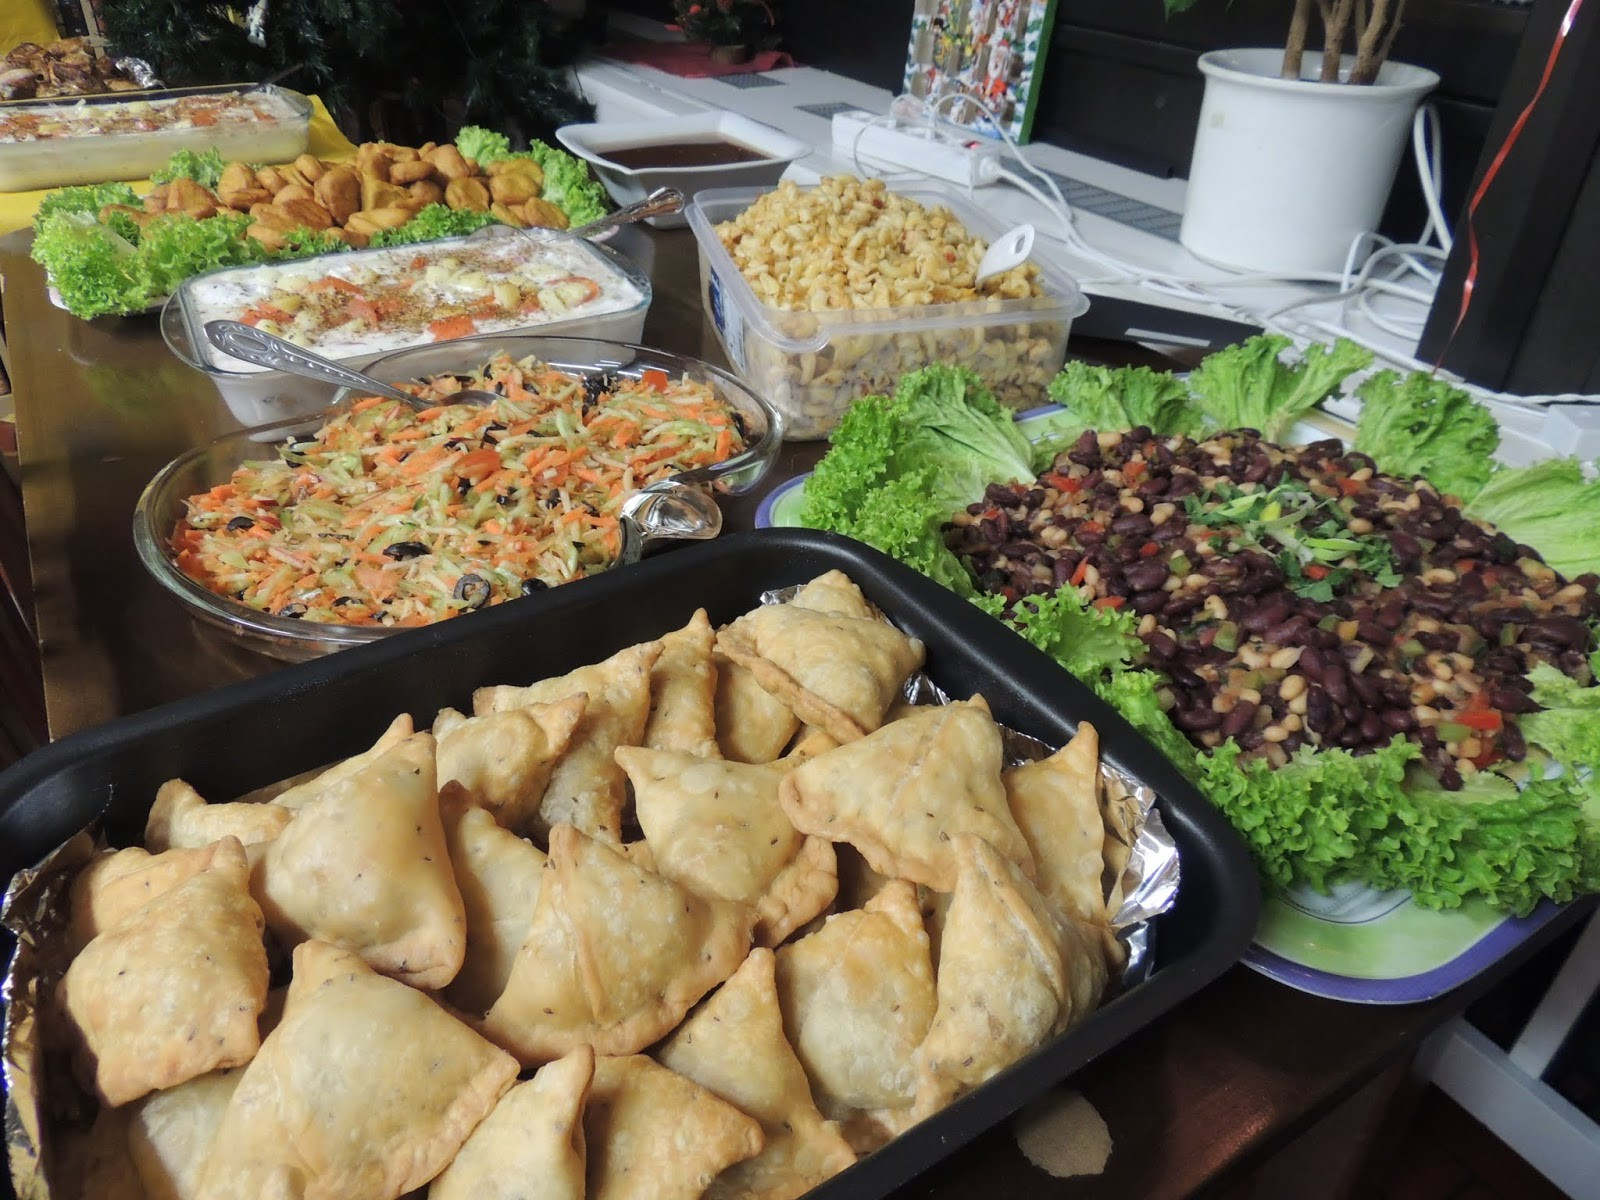 Best ideas about Birthday Party Menu . Save or Pin Home Zone Planning a Desi Birthday Party Menu Now.